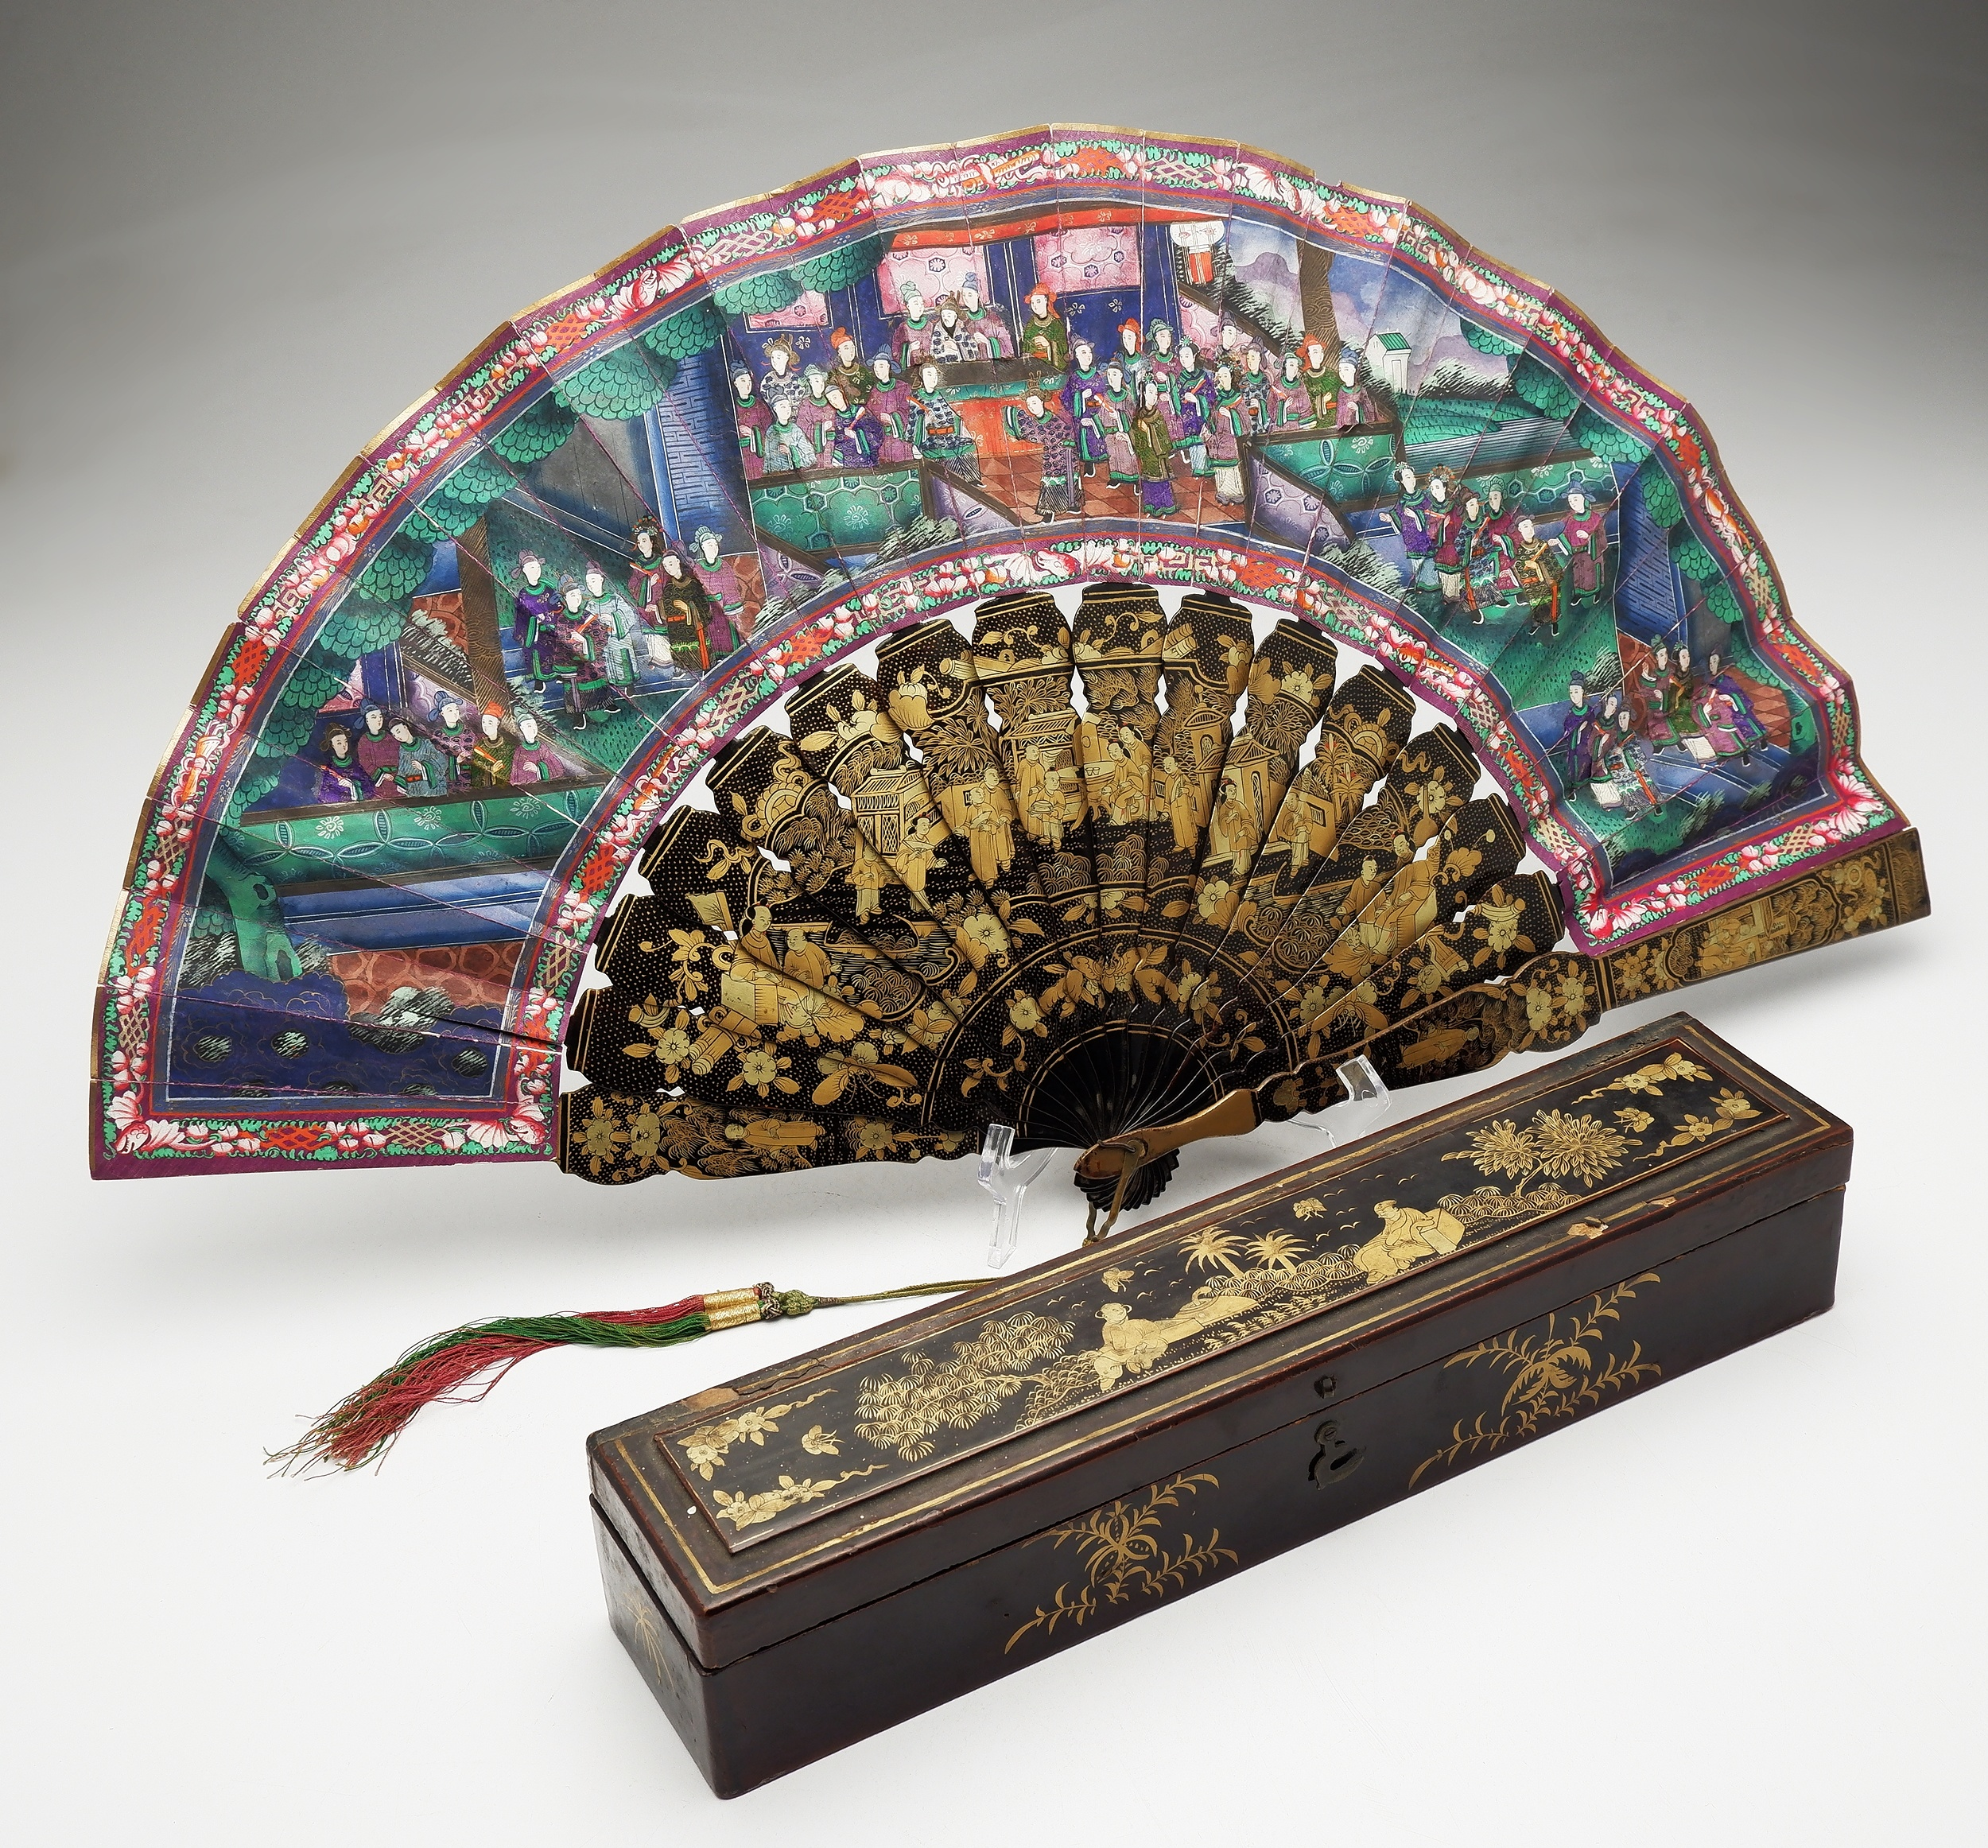 'Fine Chinese Export Lacquer and Ivory Embellished Brise Fan with Original Box Circa 1900'